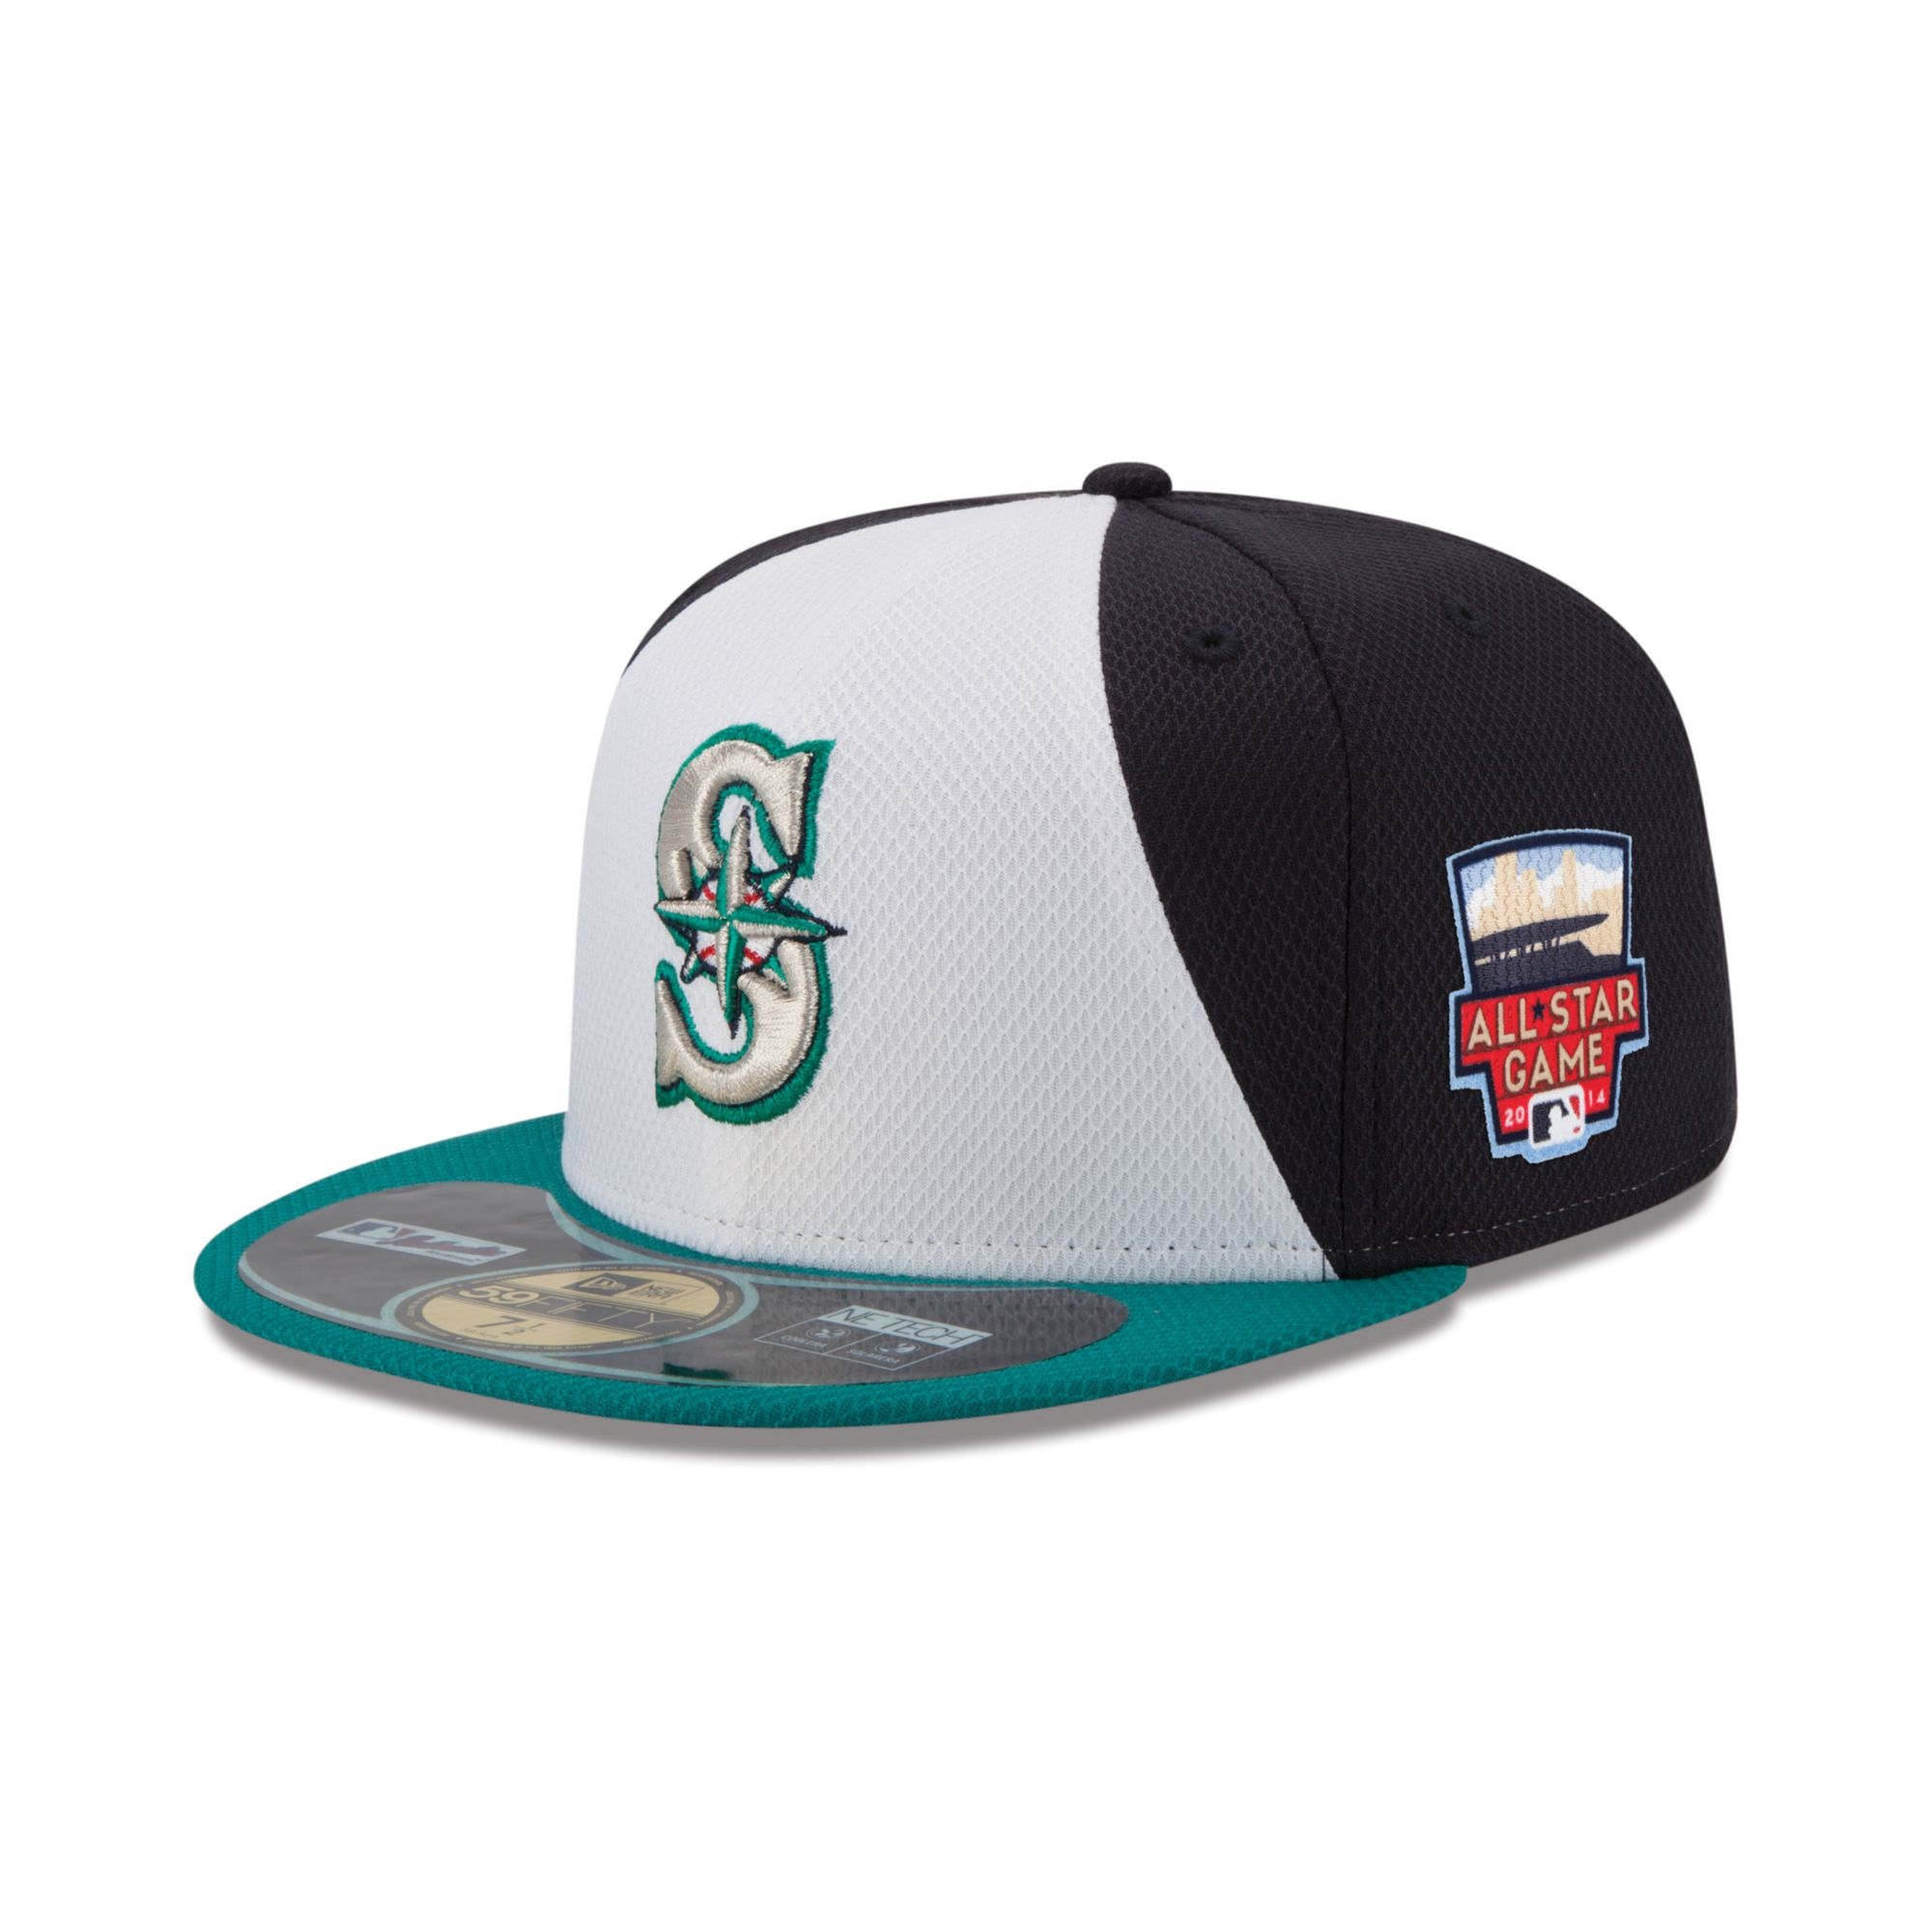 free shipping a1345 3ae3d usa detroit tigers mens new era 9fifty all star game snapback cap hat 5a864  50cb8  france lyst ktz seattle mariners all star game patch 59fifty cap in  blue ...